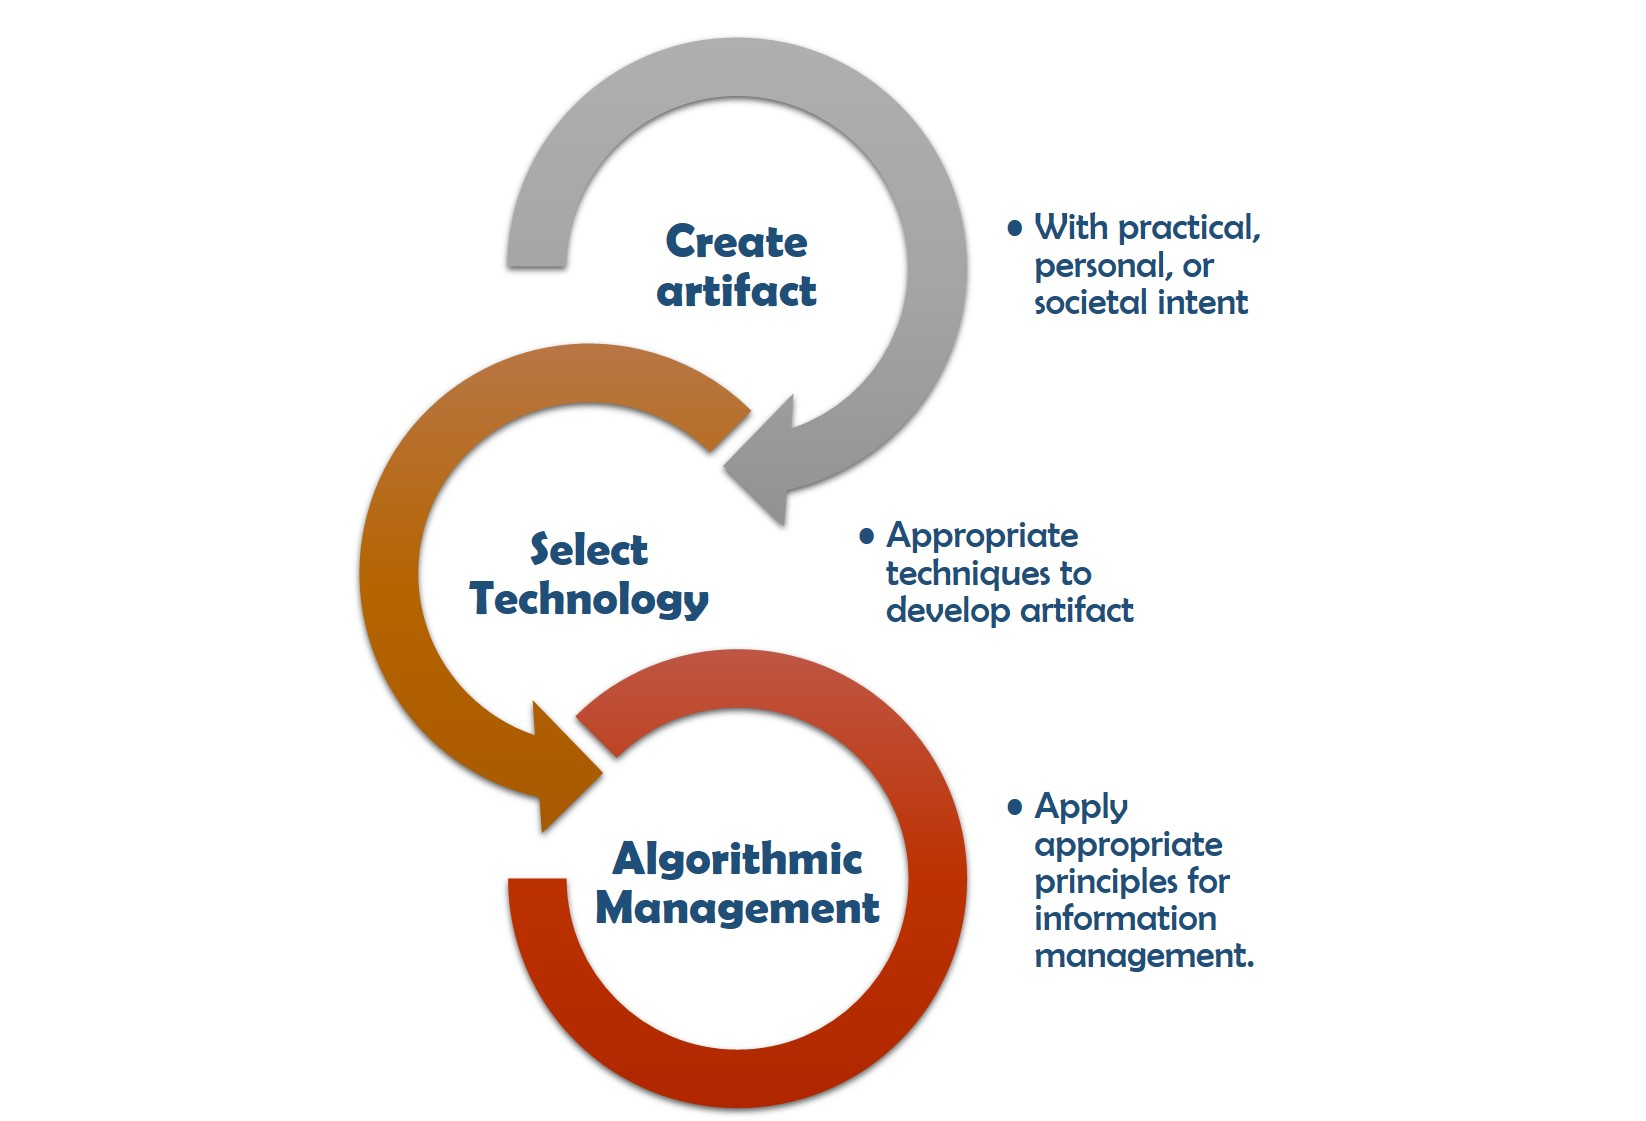 Figure 1.3 Artifact Creation Process for Computational Thinking